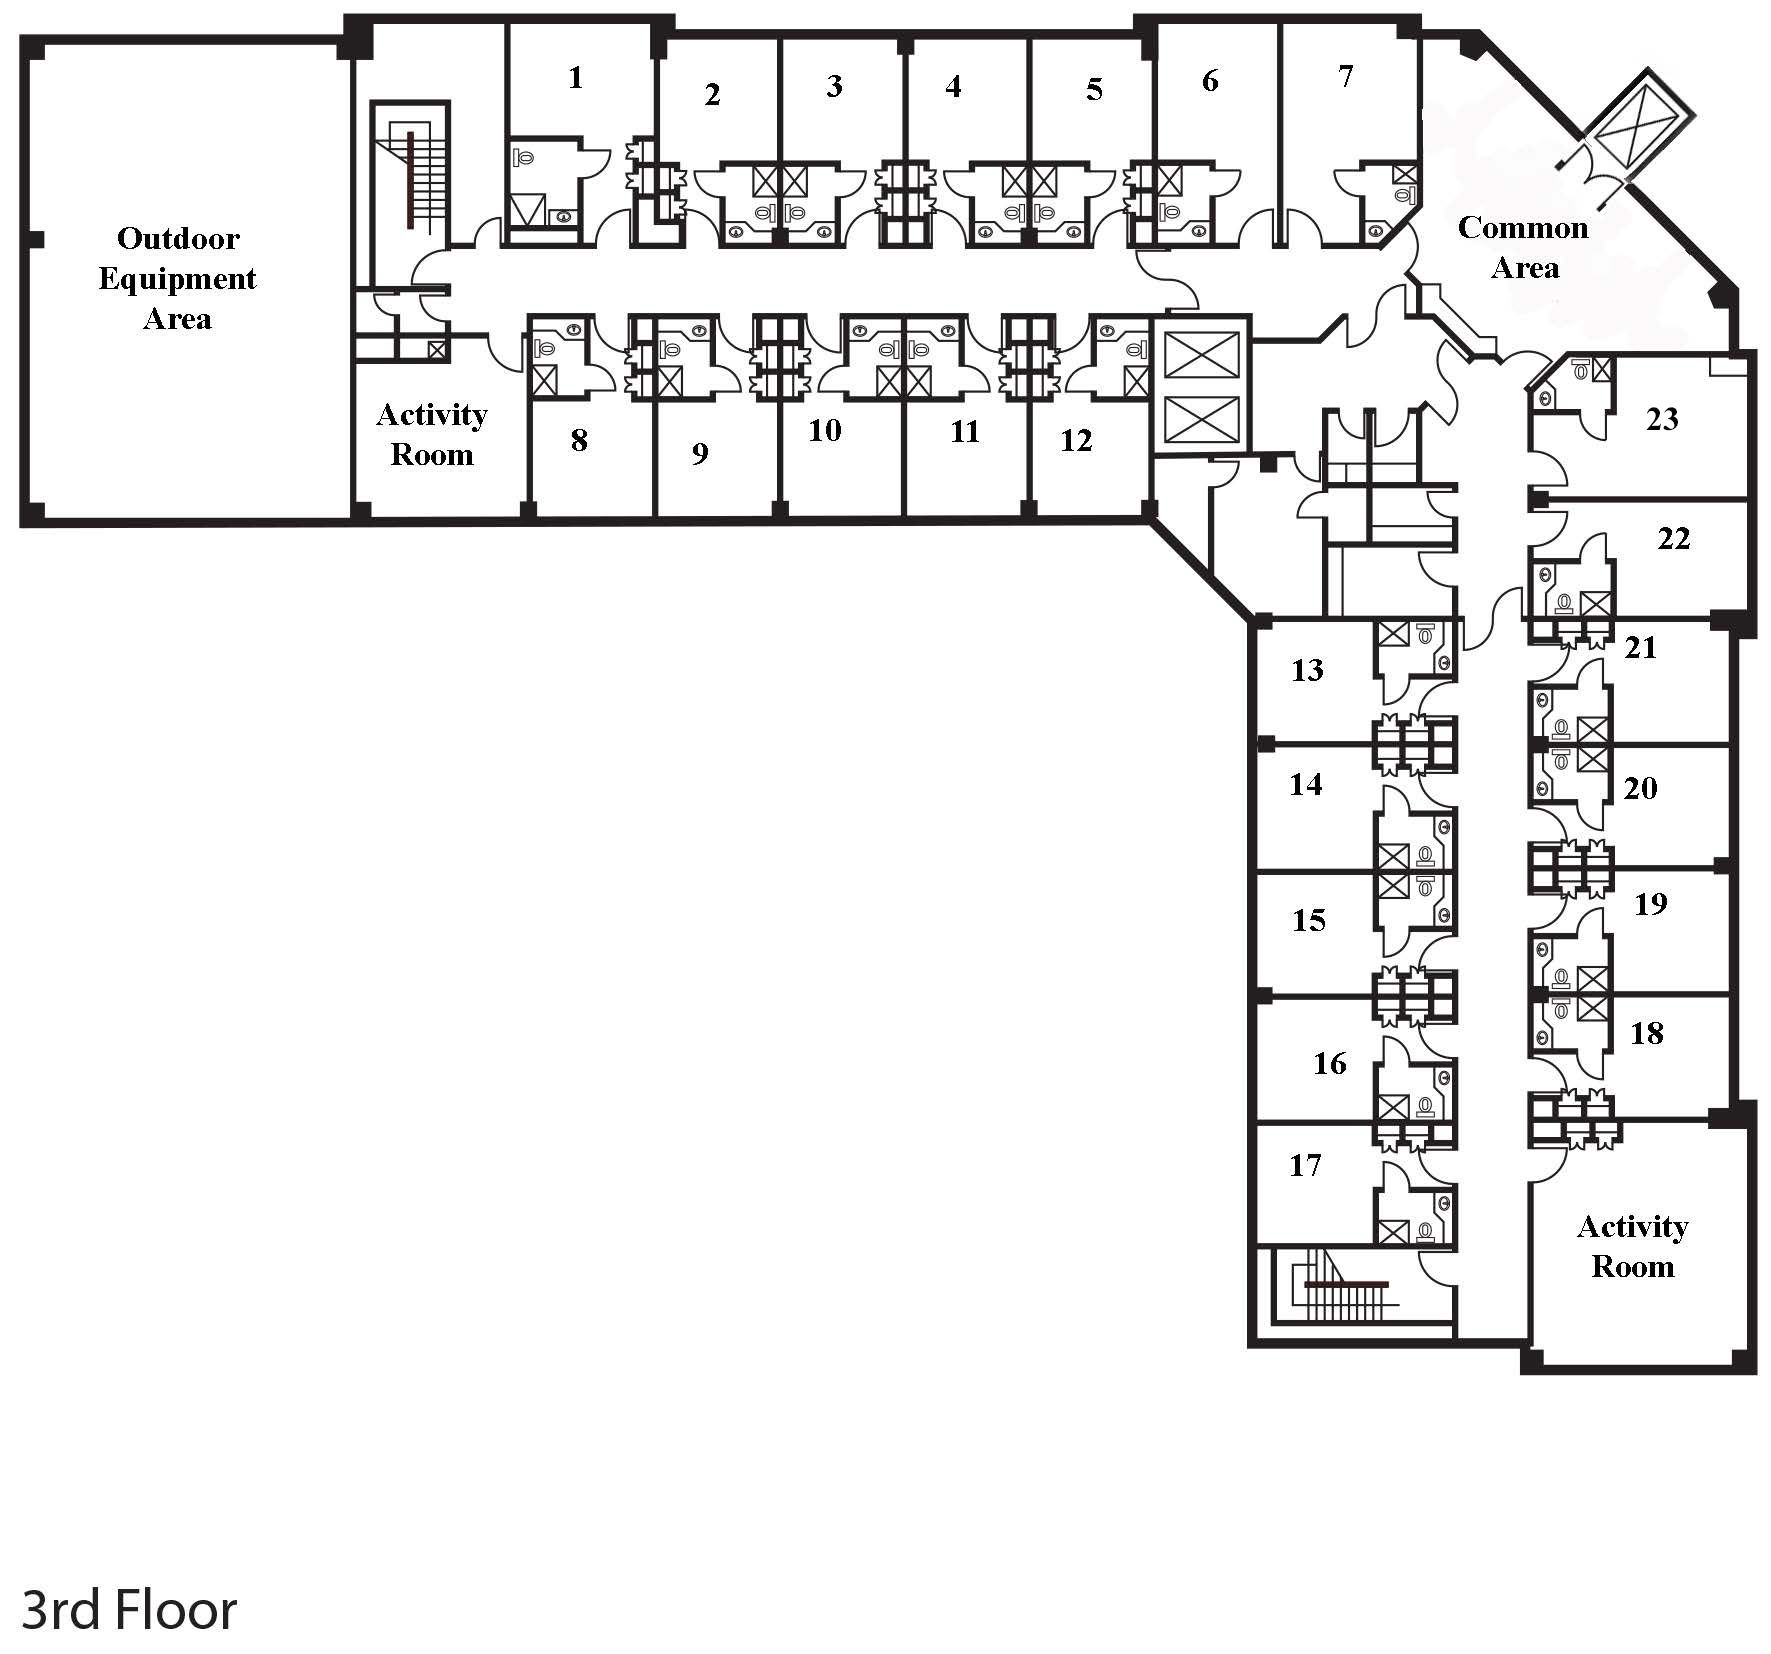 Assisted living floor plans google search floor plan for How to build a retirement home